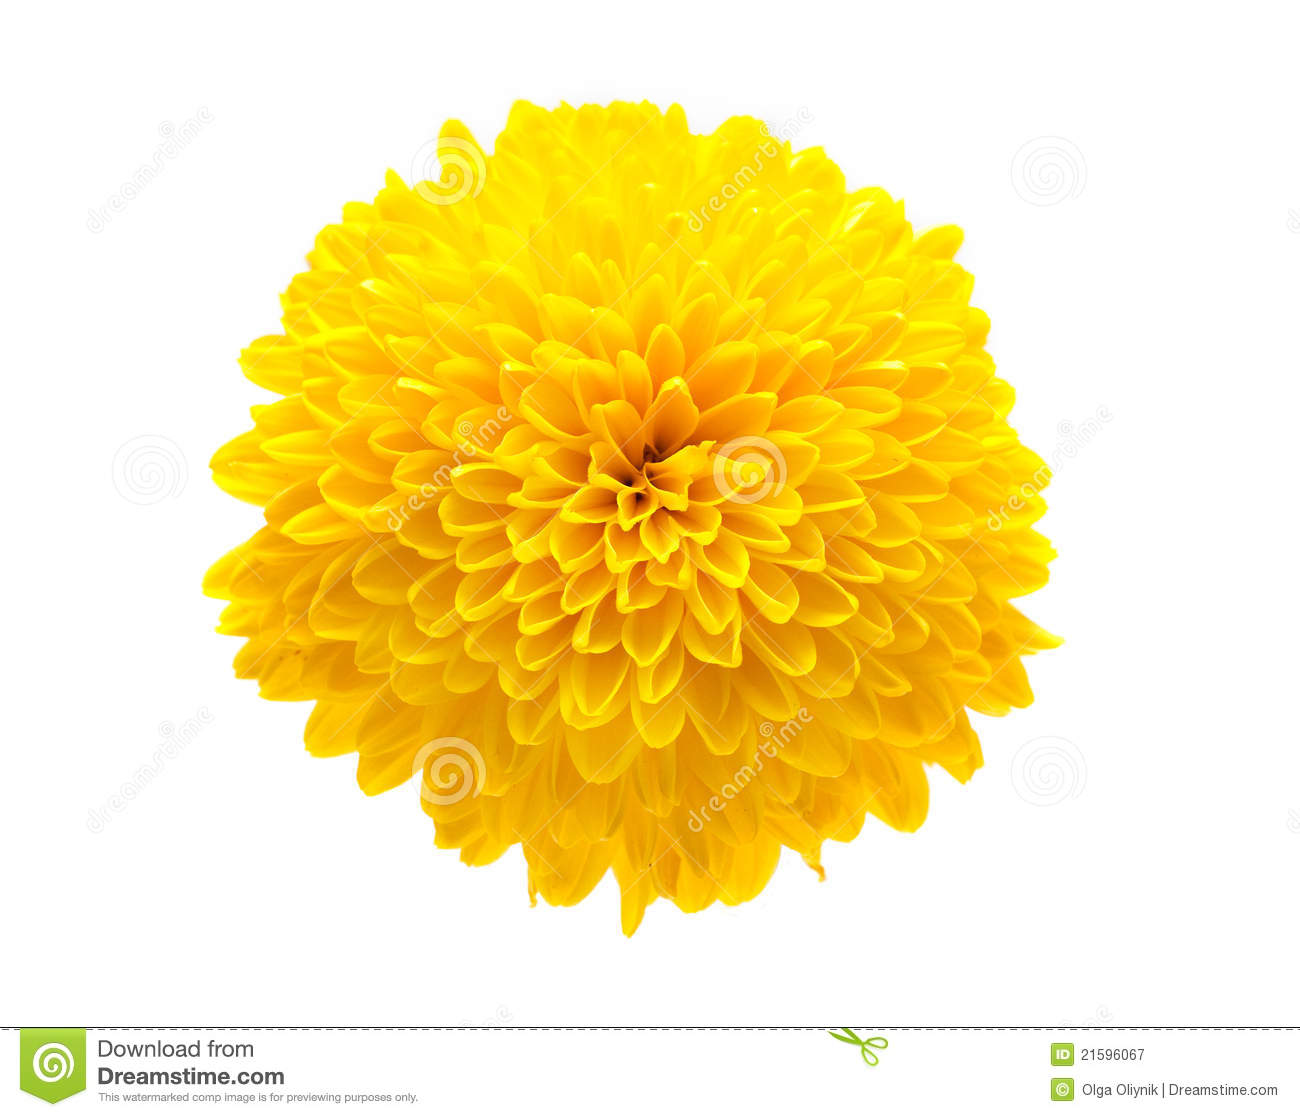 Yellow Chrysanthemum Royalty Free Stock Photography - Image: 21596067